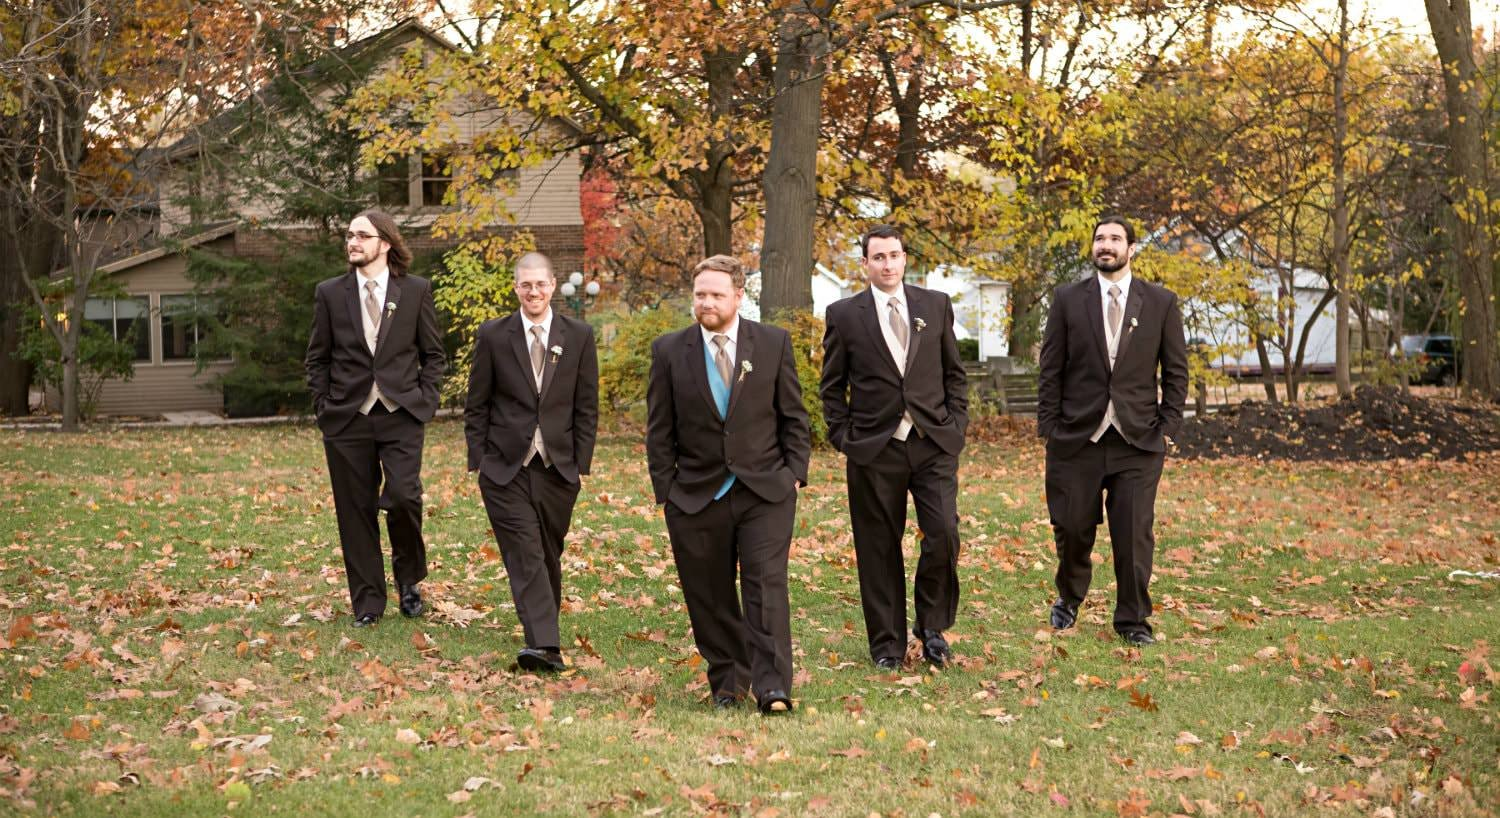 "Groom flanked by two groomsmen on each side walking in a ""v"" formation outside in the leaf-covered grass"